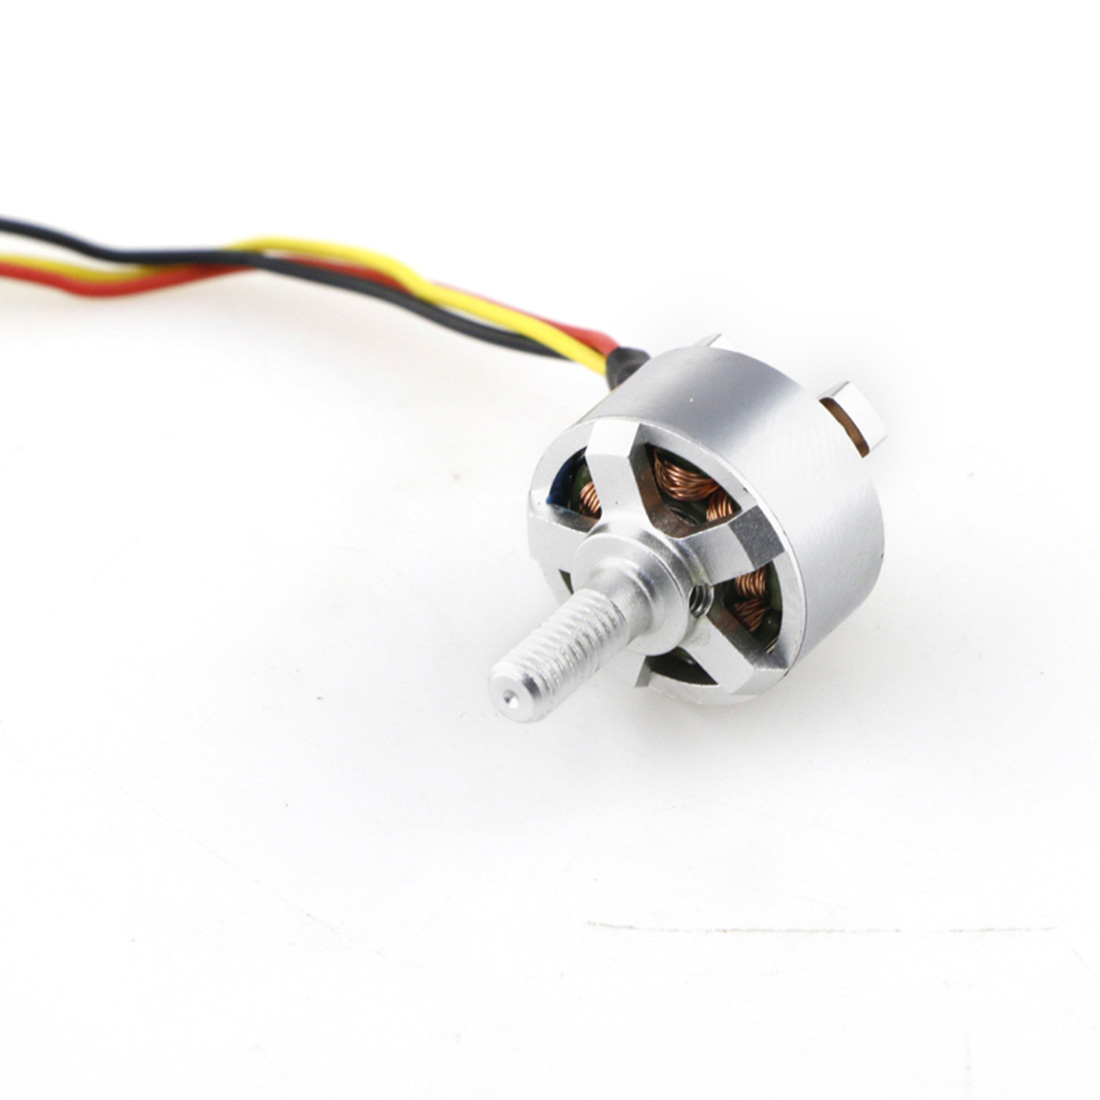 MJX Bugs 3 Mini 1306 2750KV Brushless Motor CW CCW for MJX B3 Racer Drone RC Helicopter Aircraft Spare Parts